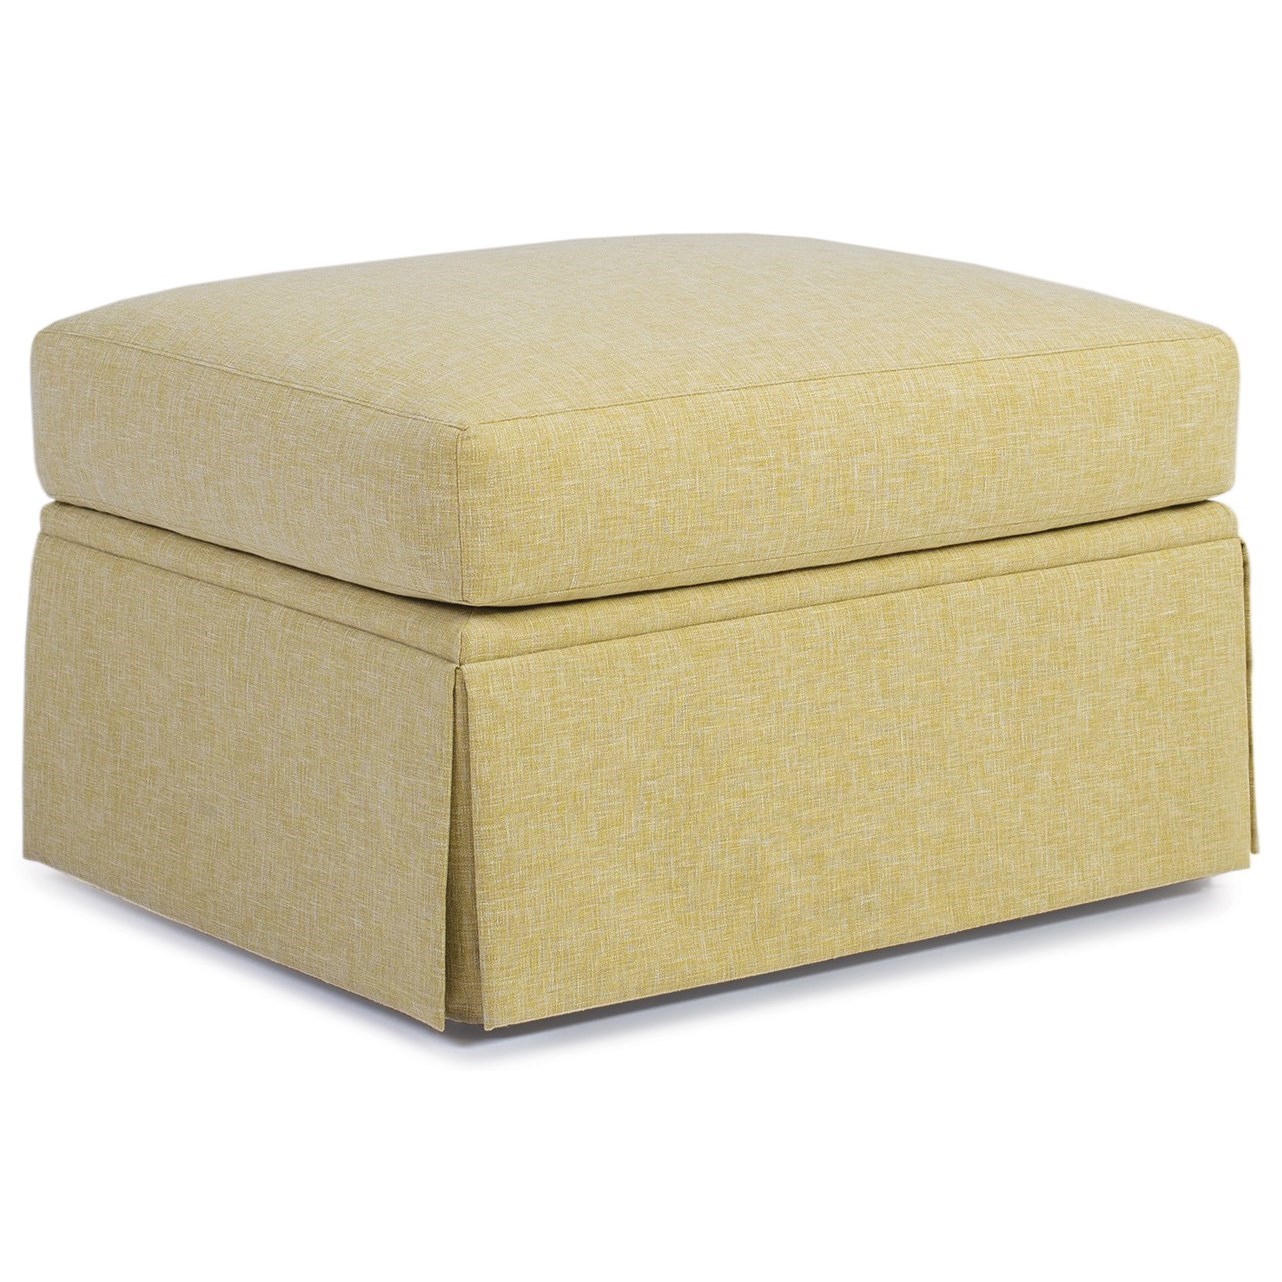 260 Ottoman by Smith Brothers at Rooms for Less